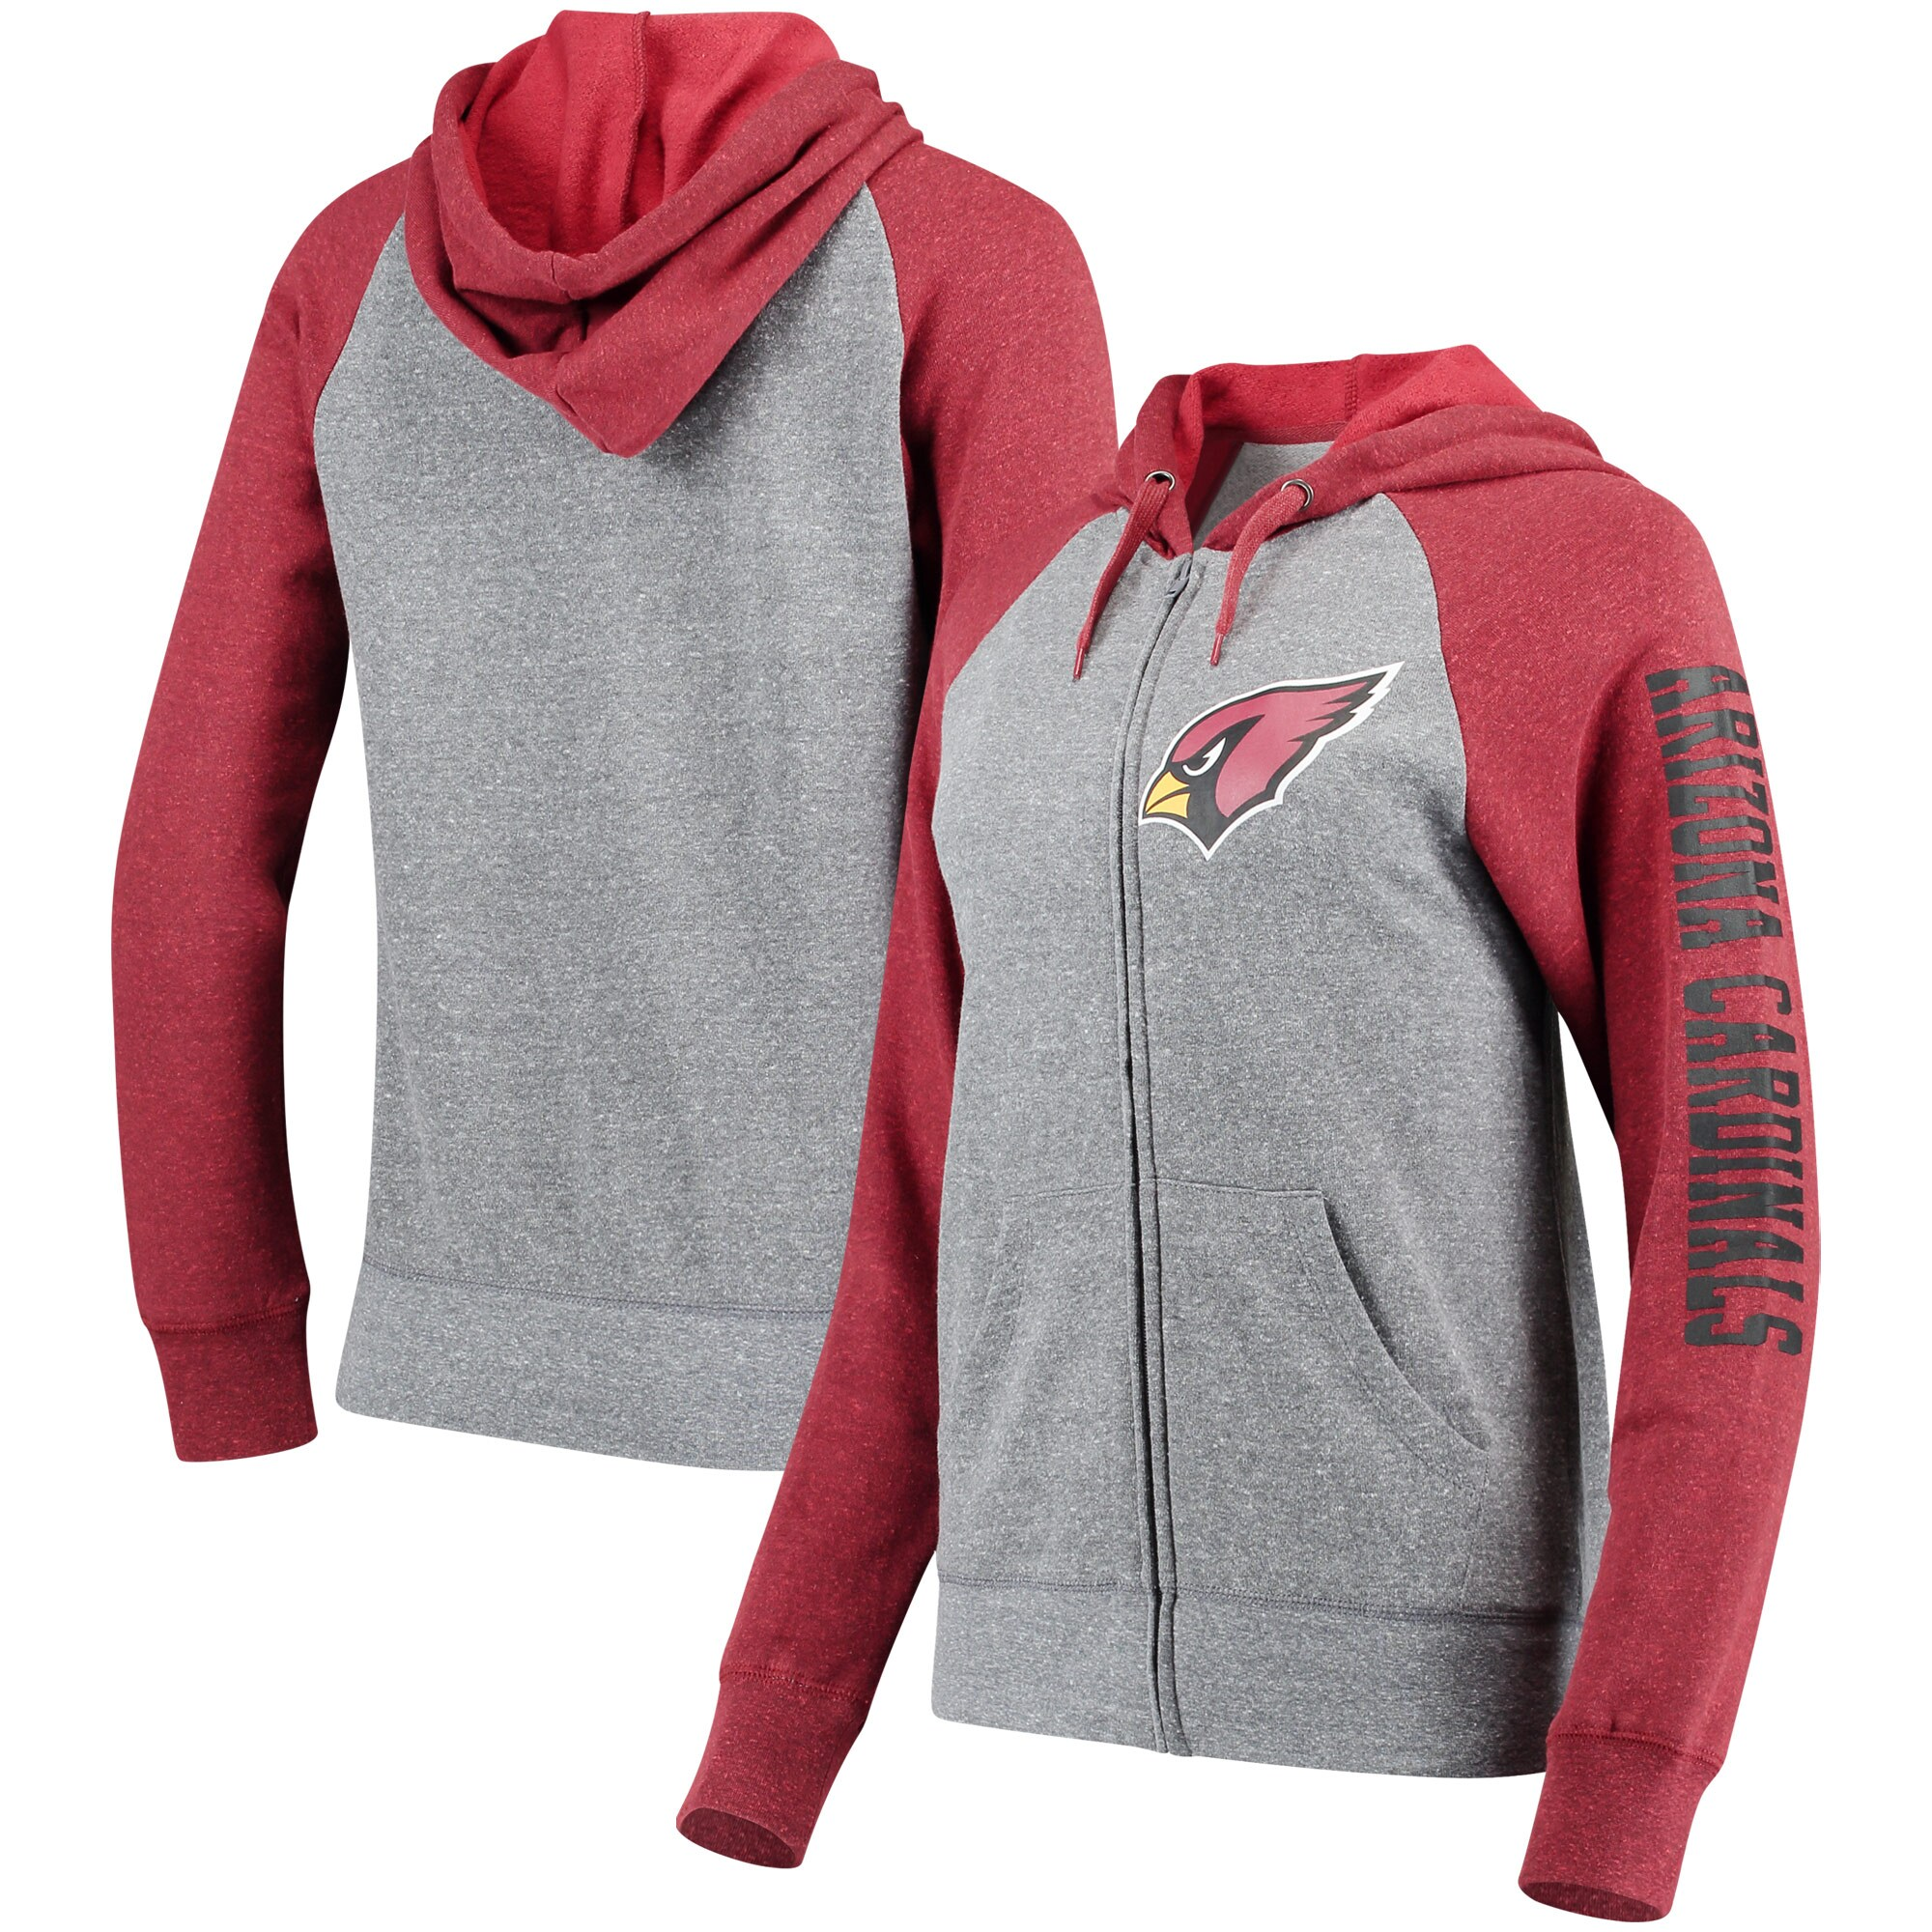 Arizona Cardinals 5th & Ocean by New Era Women's Fleece Tri-Blend Raglan Sleeve Full-Zip Hoodie - Heathered Gray/Cardinal